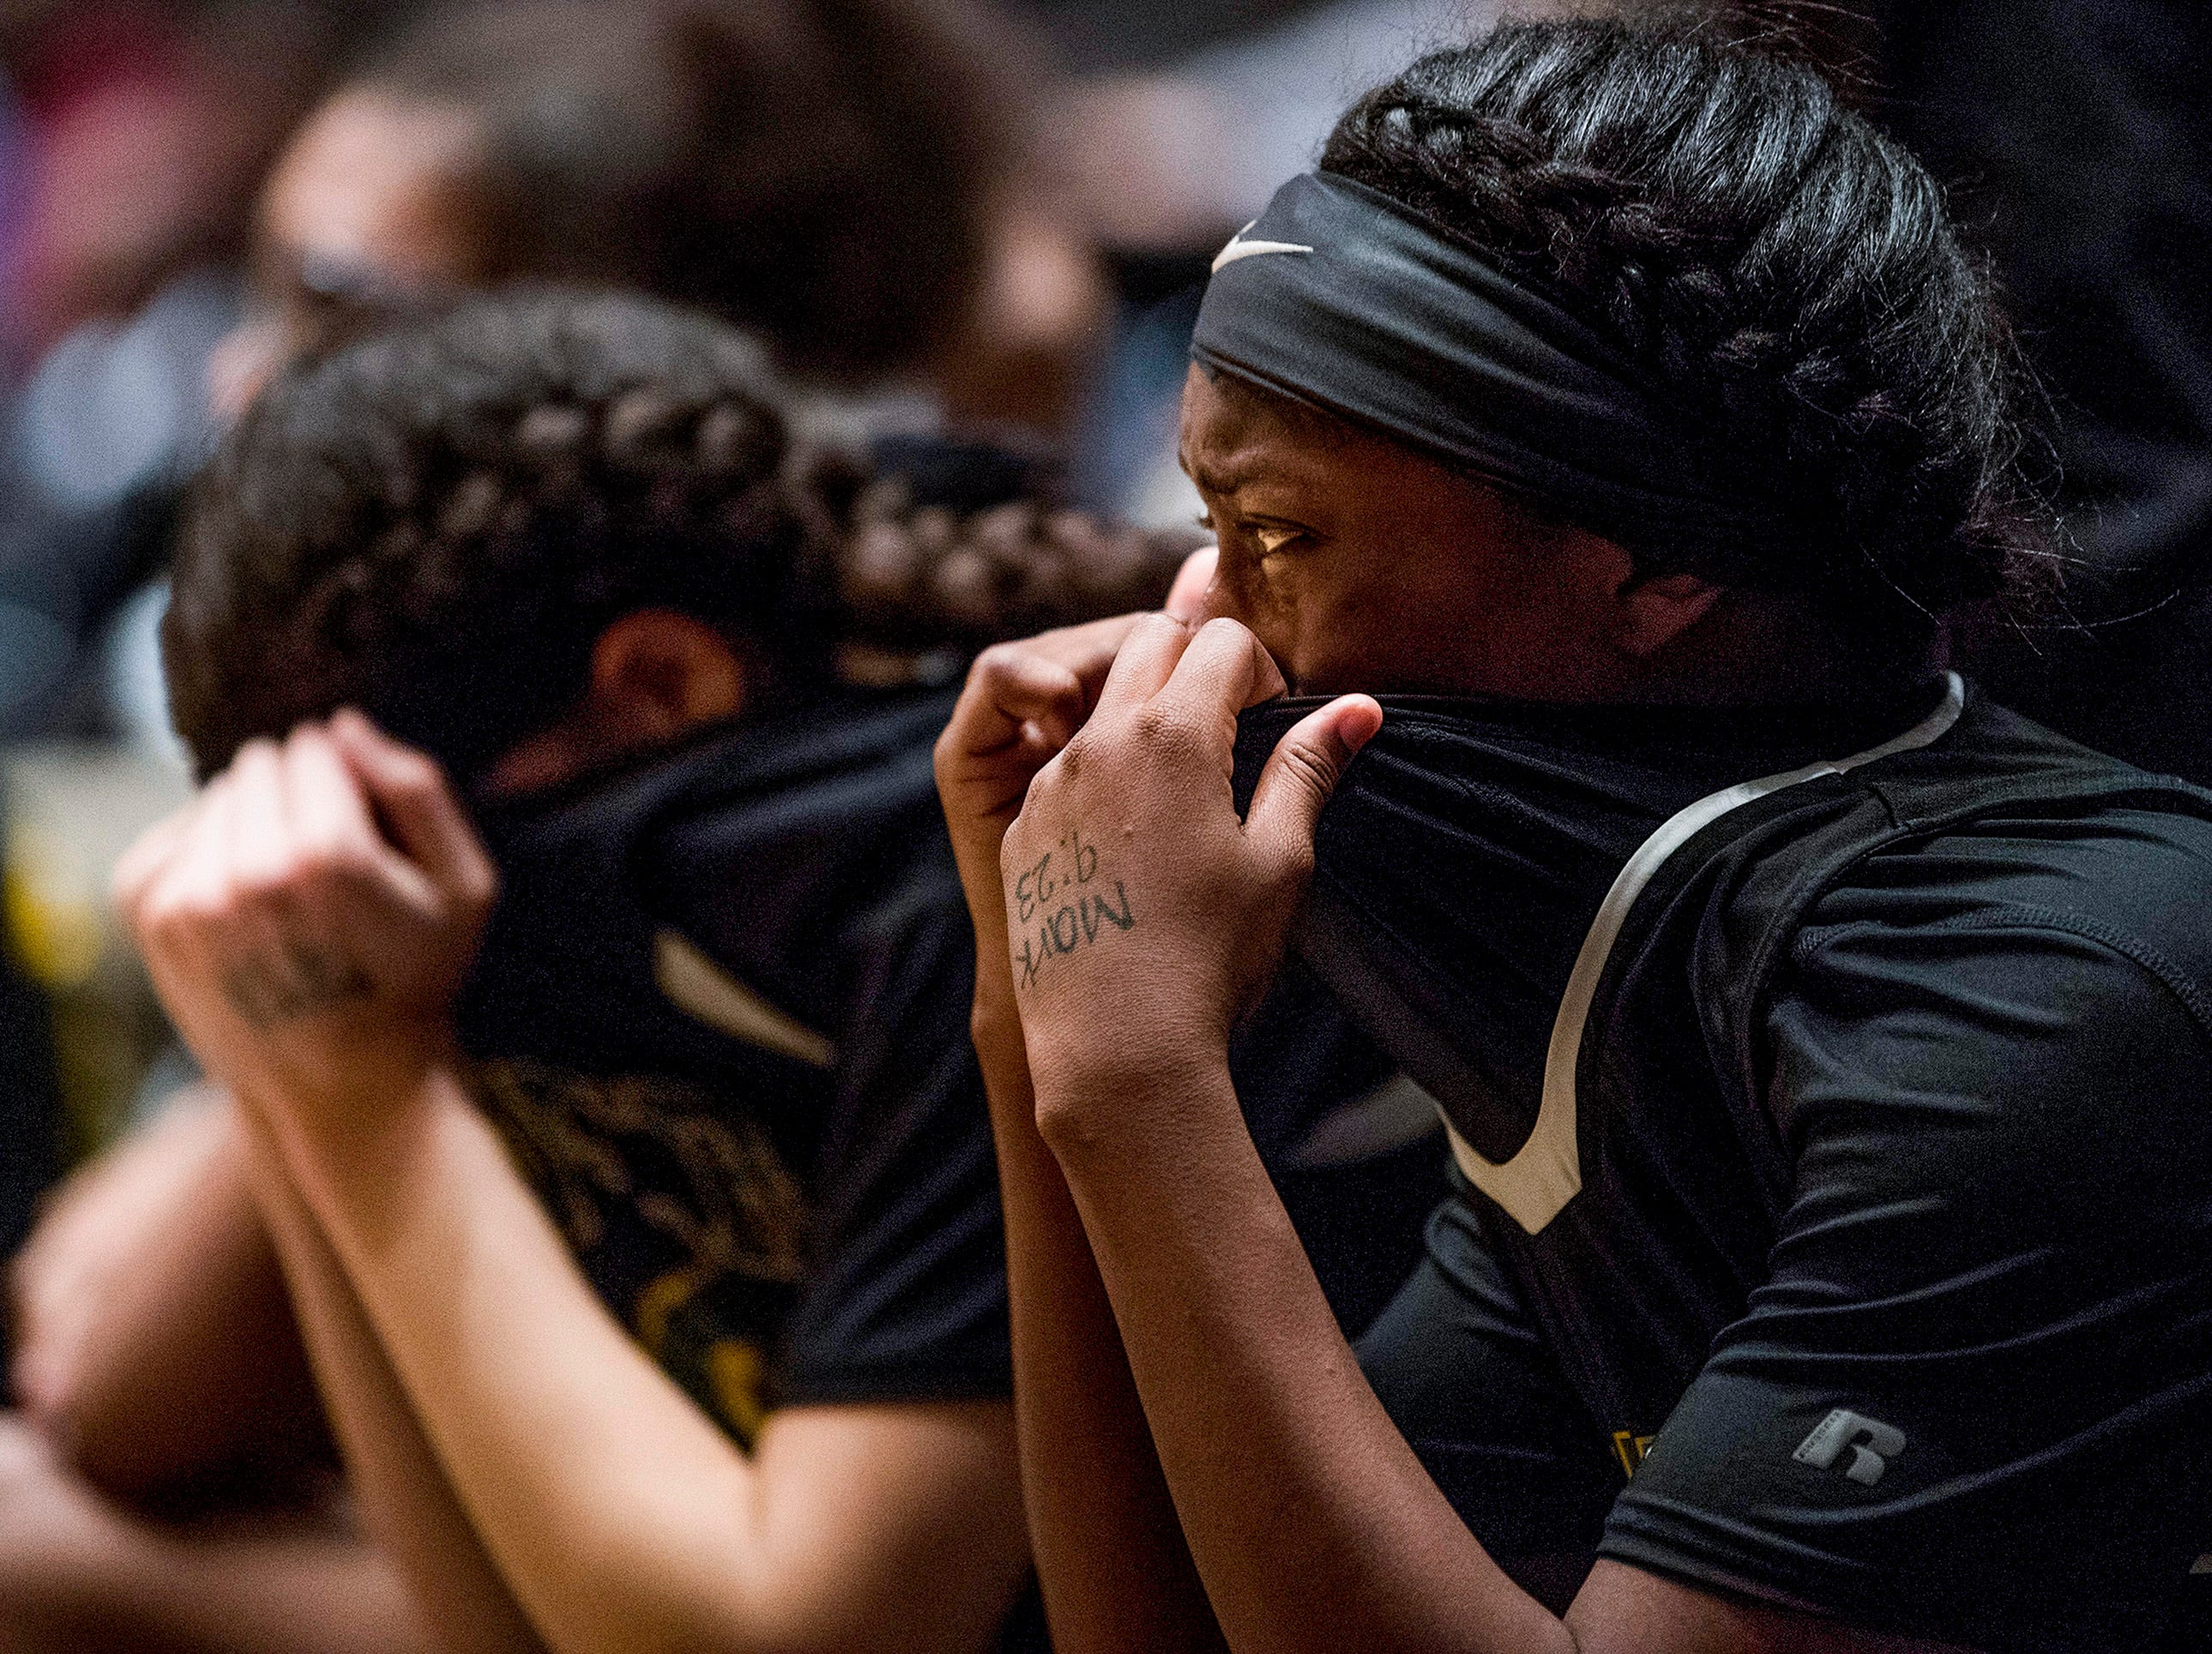 Carver players watch as time runs out in their loss to Blount at the AHSAA Regional Tournament in Dothan, Ala., on Friday February 16, 2018.